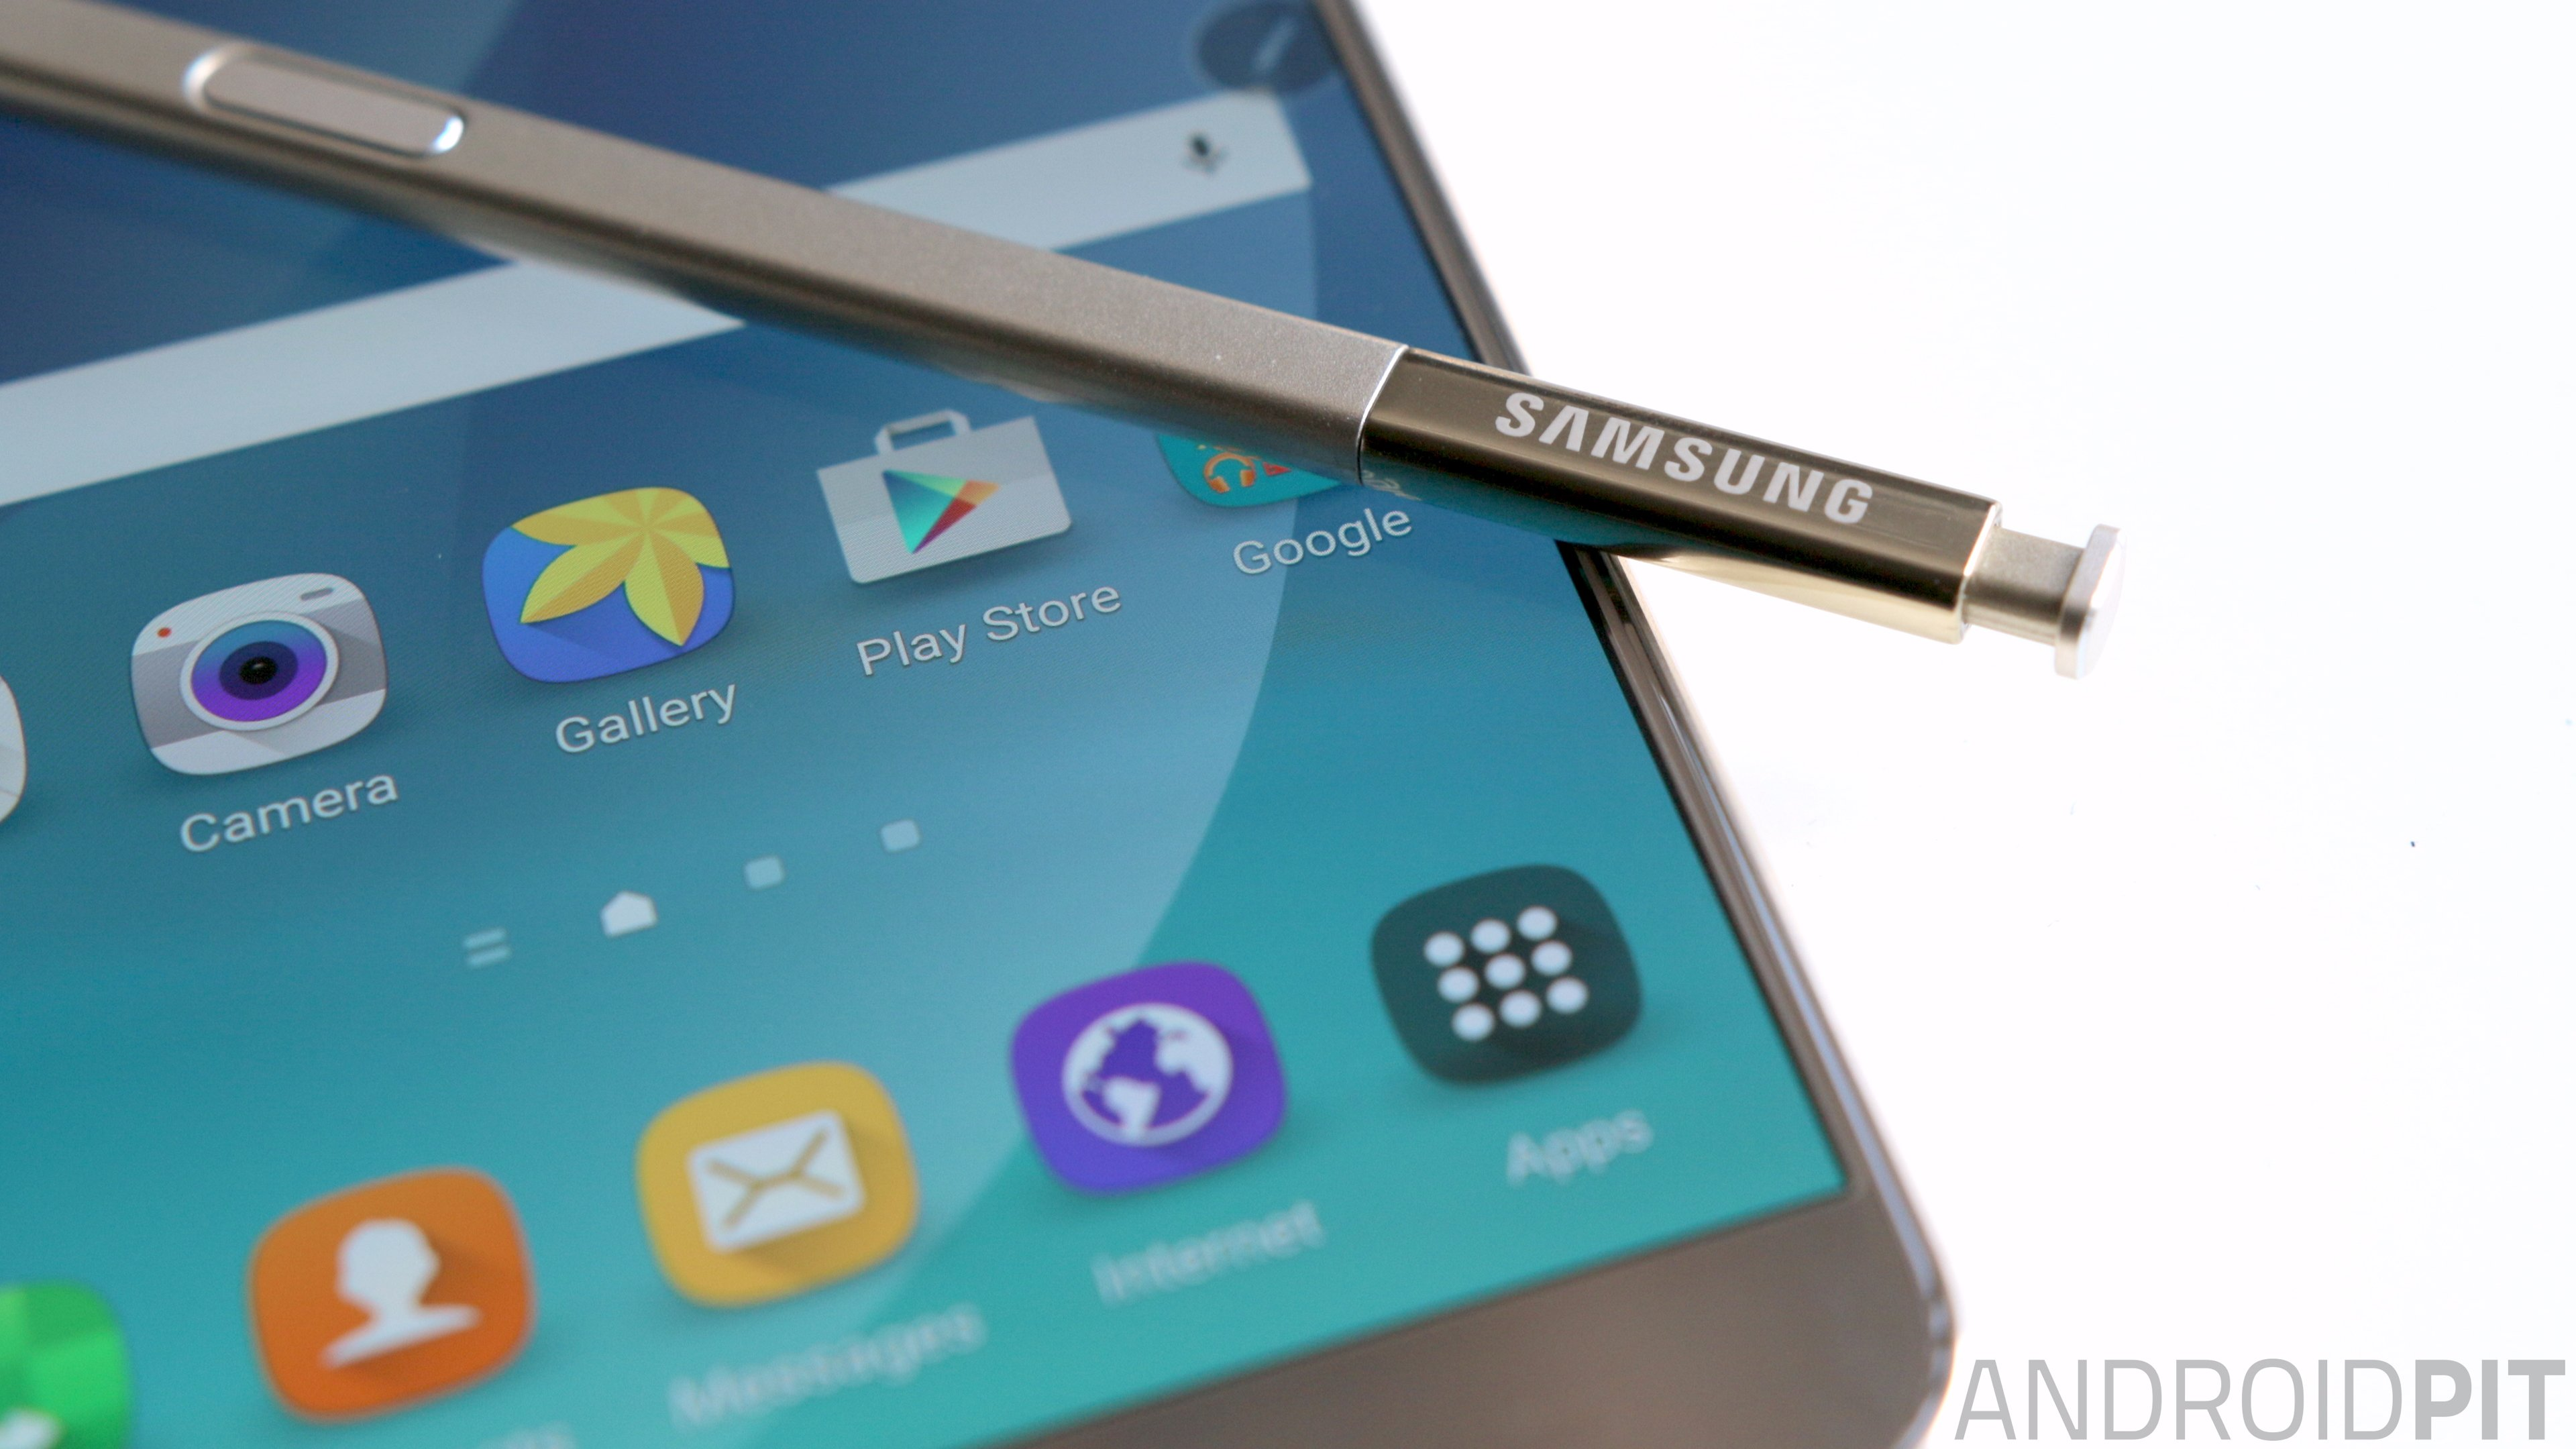 How to factory reset the Galaxy Note 5 for better performance